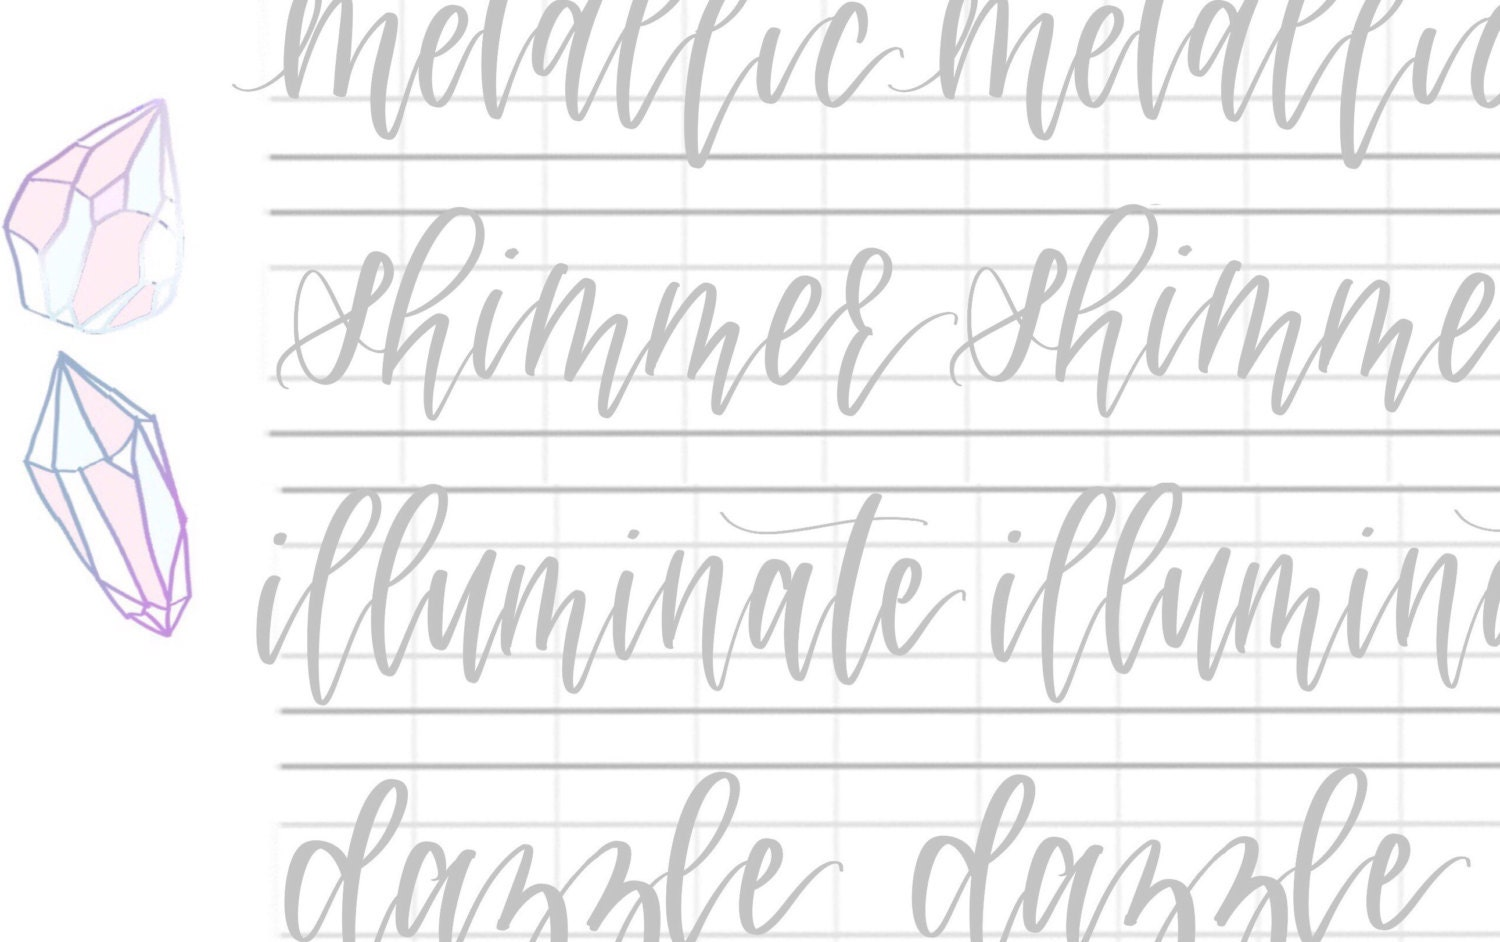 Hand lettering practice sheets sparkly double letter